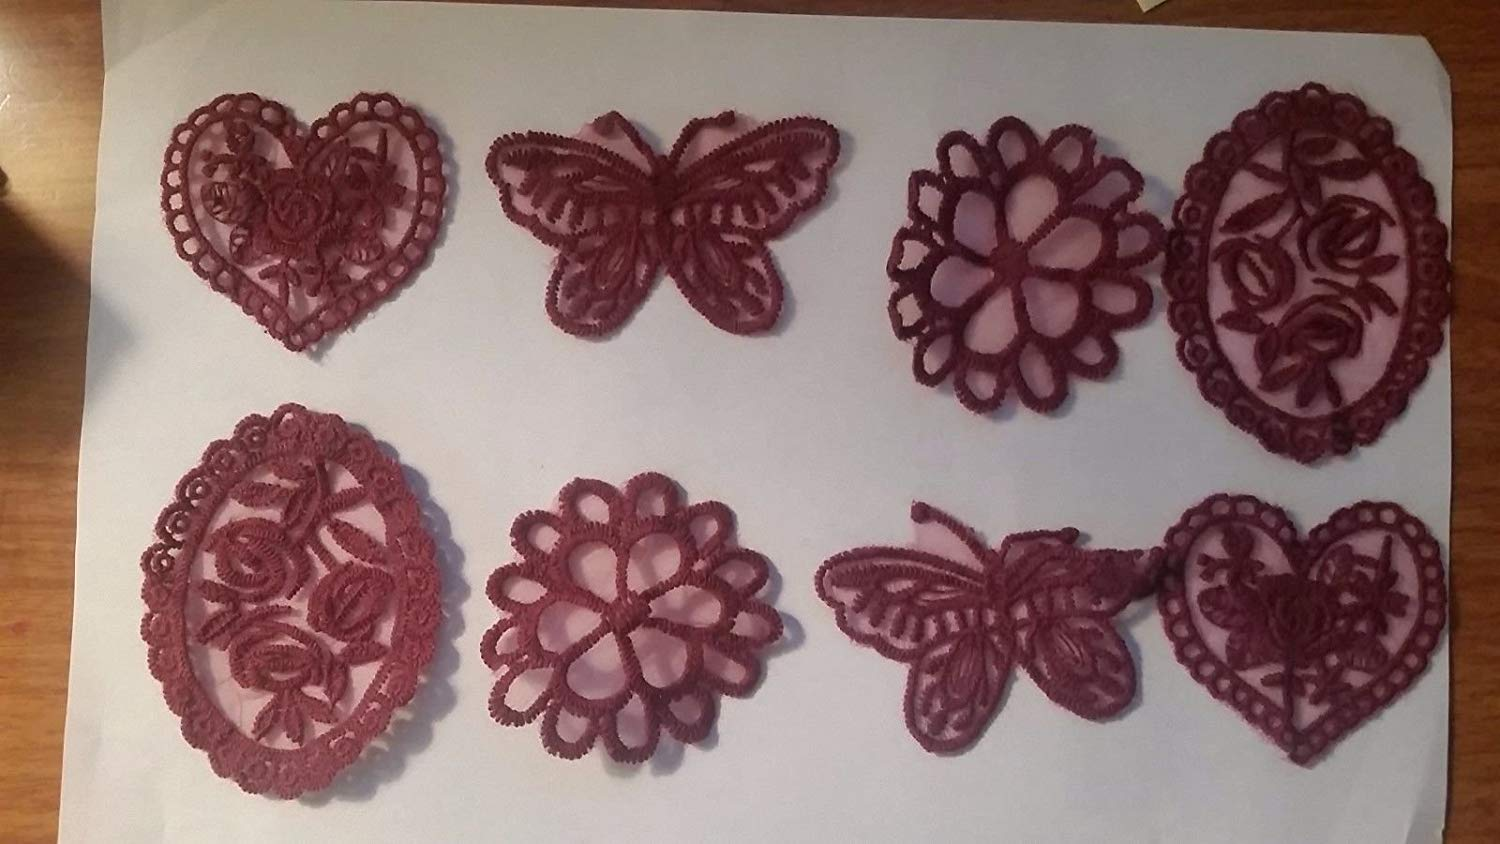 CraftbuddyUS 8 x Vintage Mixed Burgundy Lace Motifs Patches Sewing Sew on Stick on Crochet